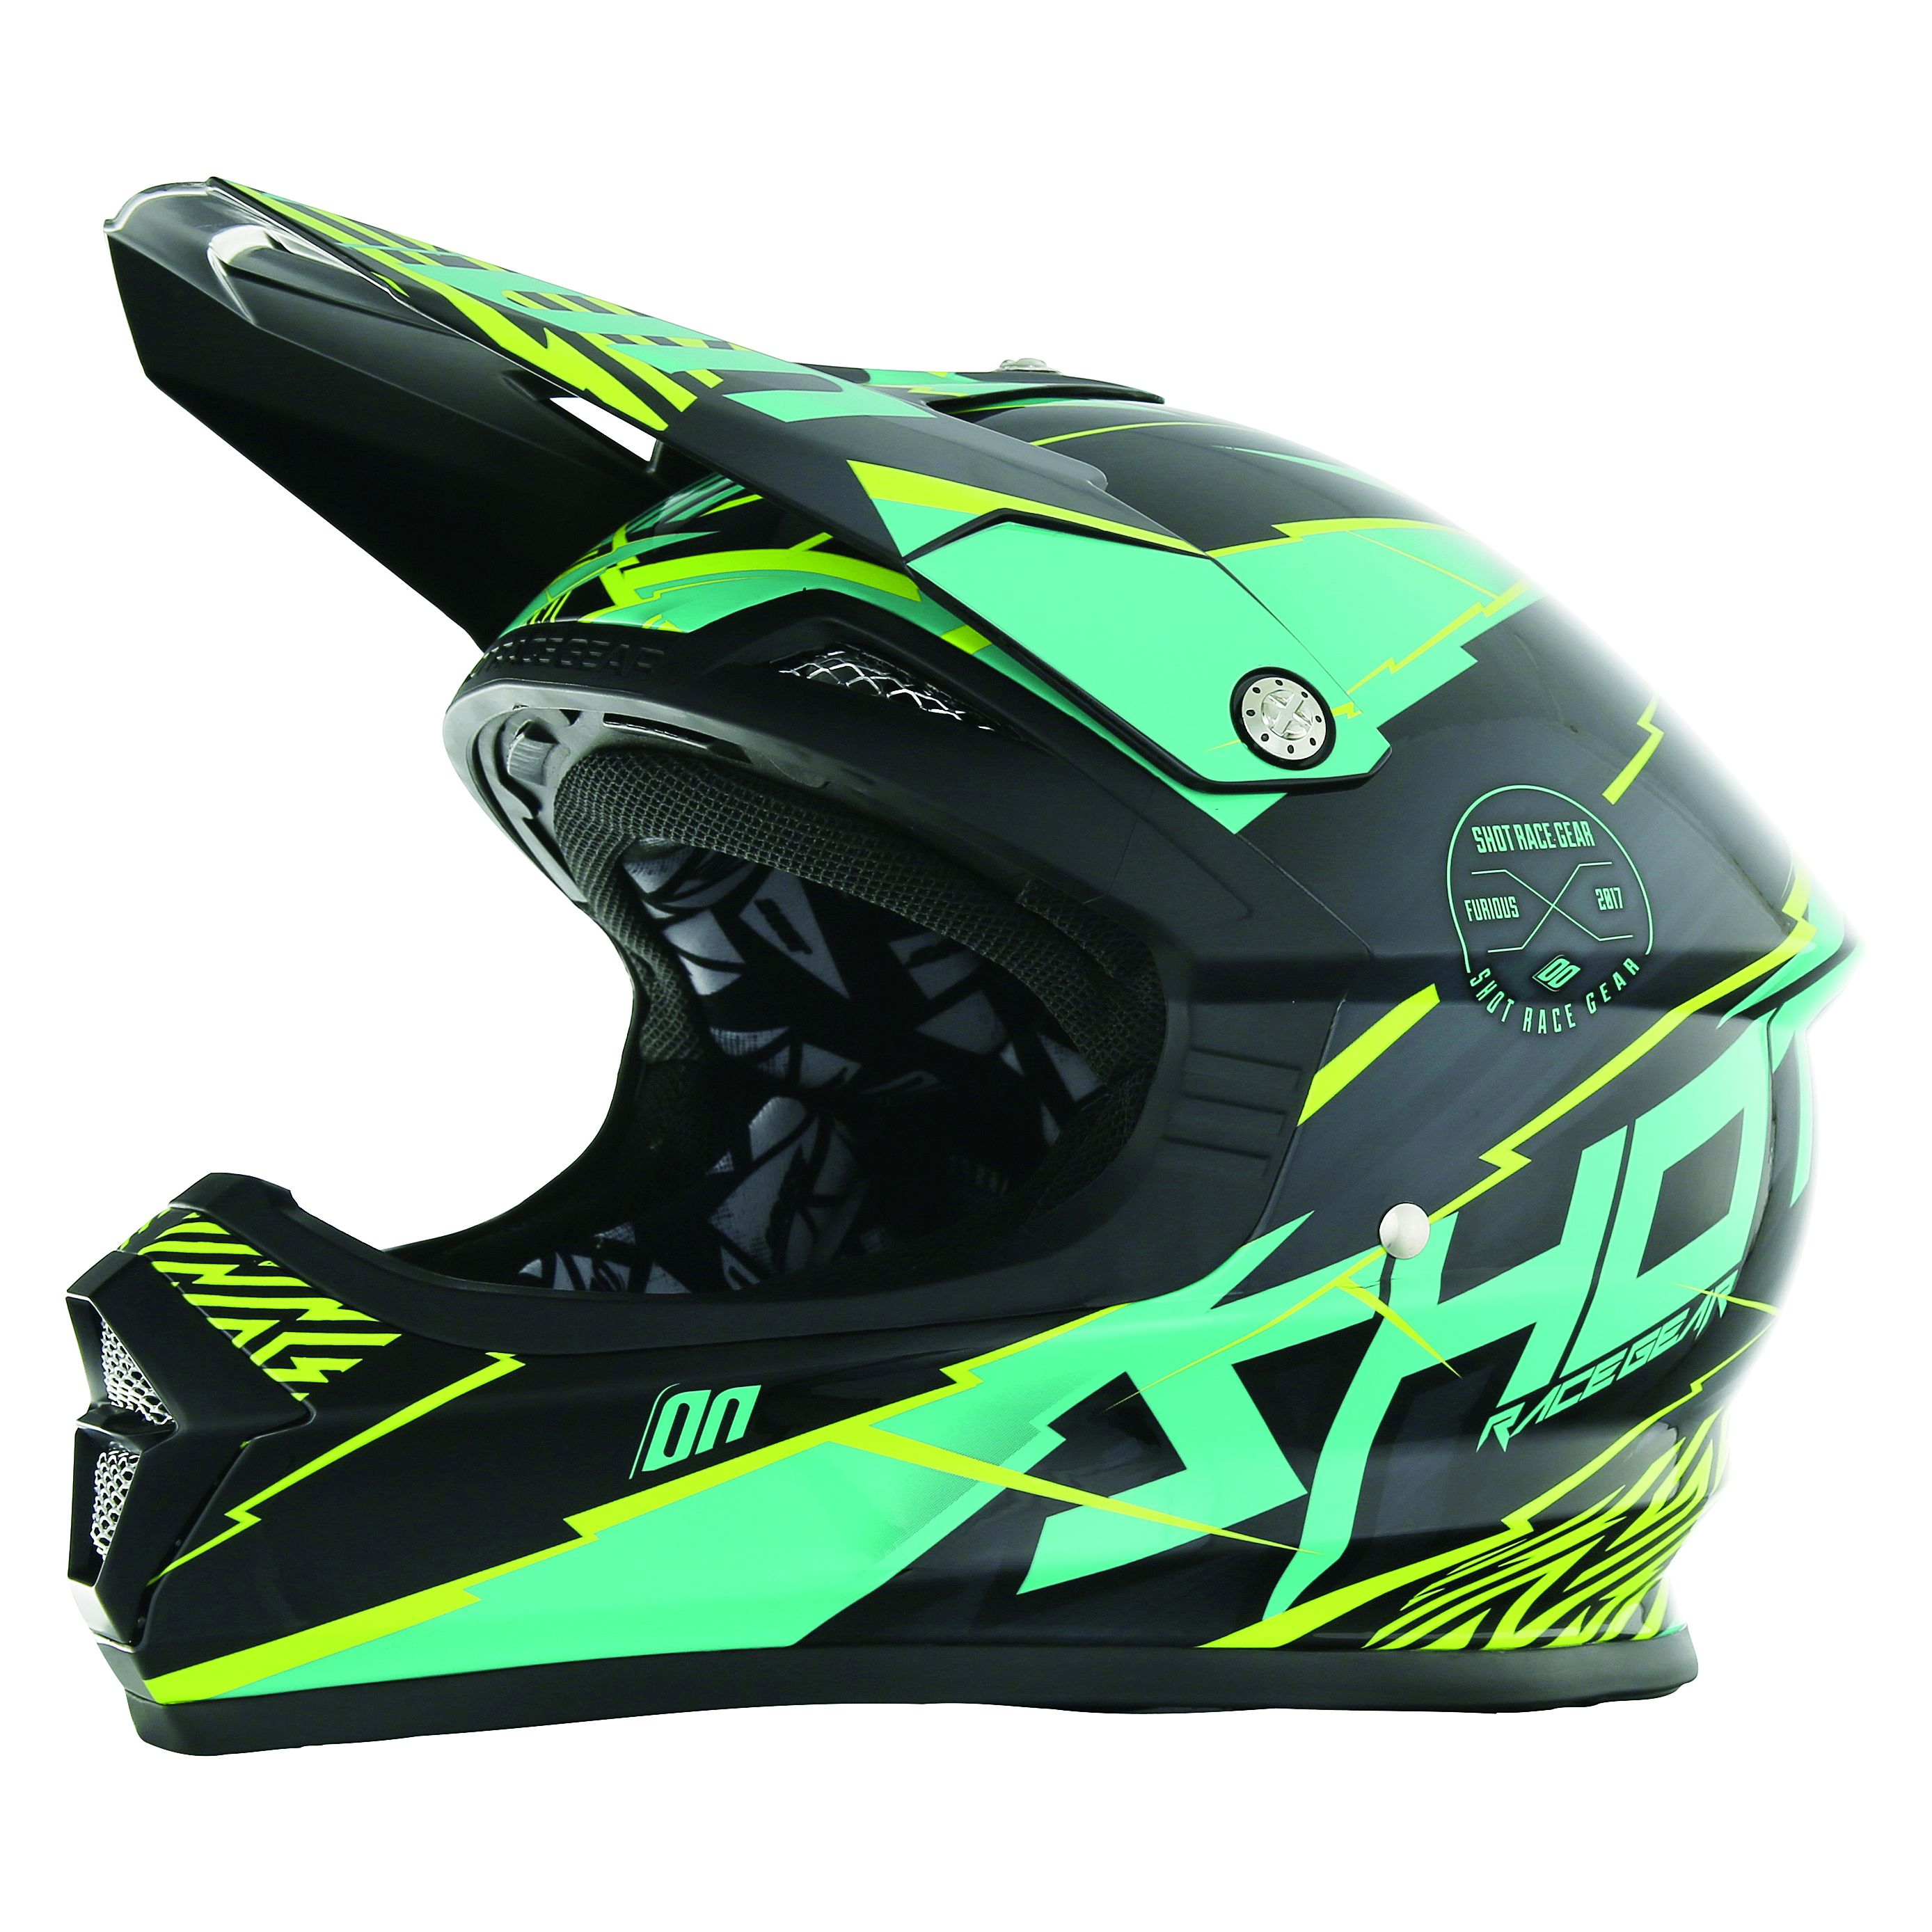 Casque cross Shot destockage FURIOUS INFINITY MINT LIME  2017